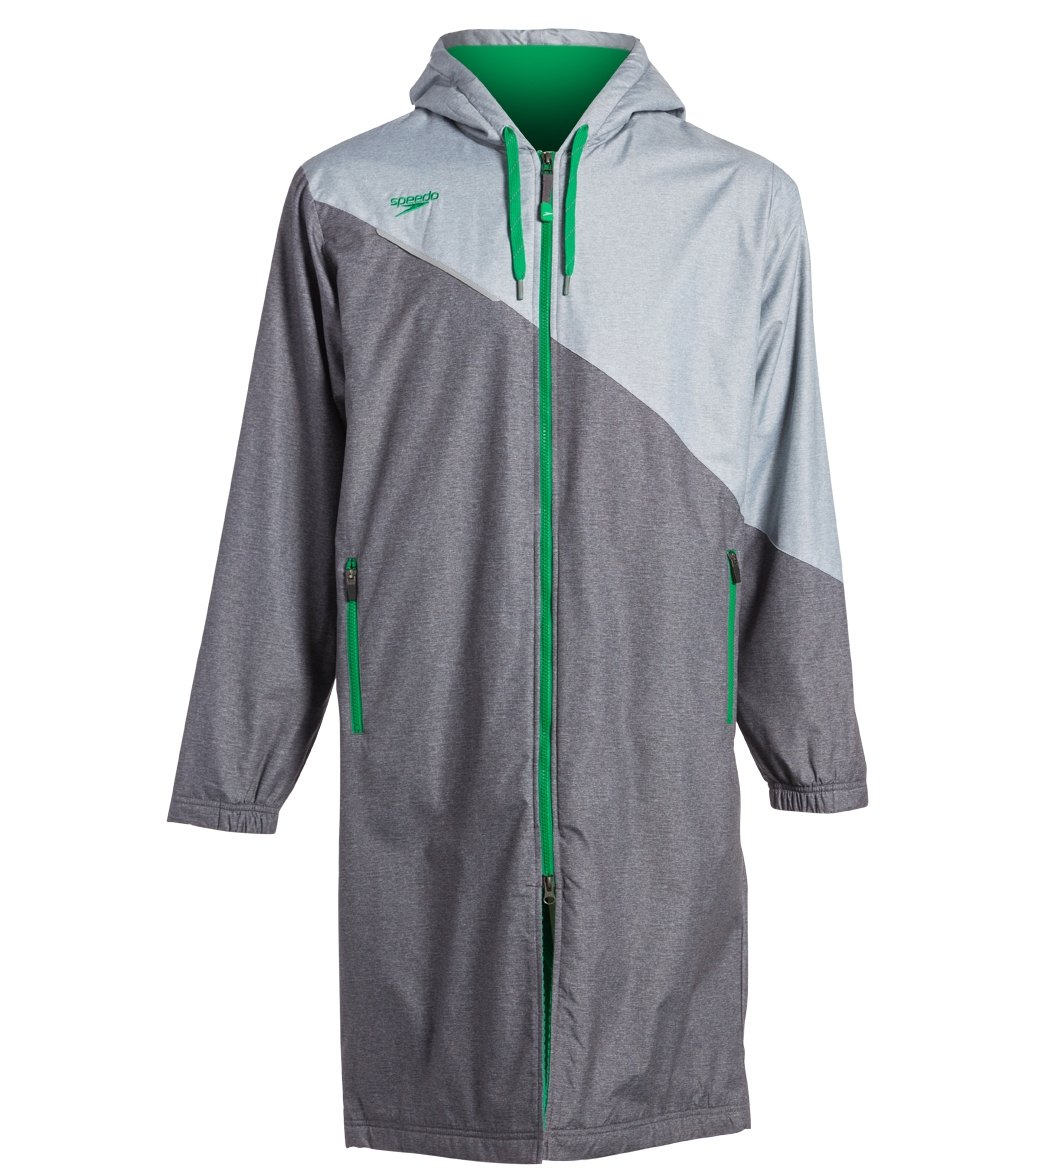 Speedo Color Block Parka at SwimOutlet.com - Free Shipping